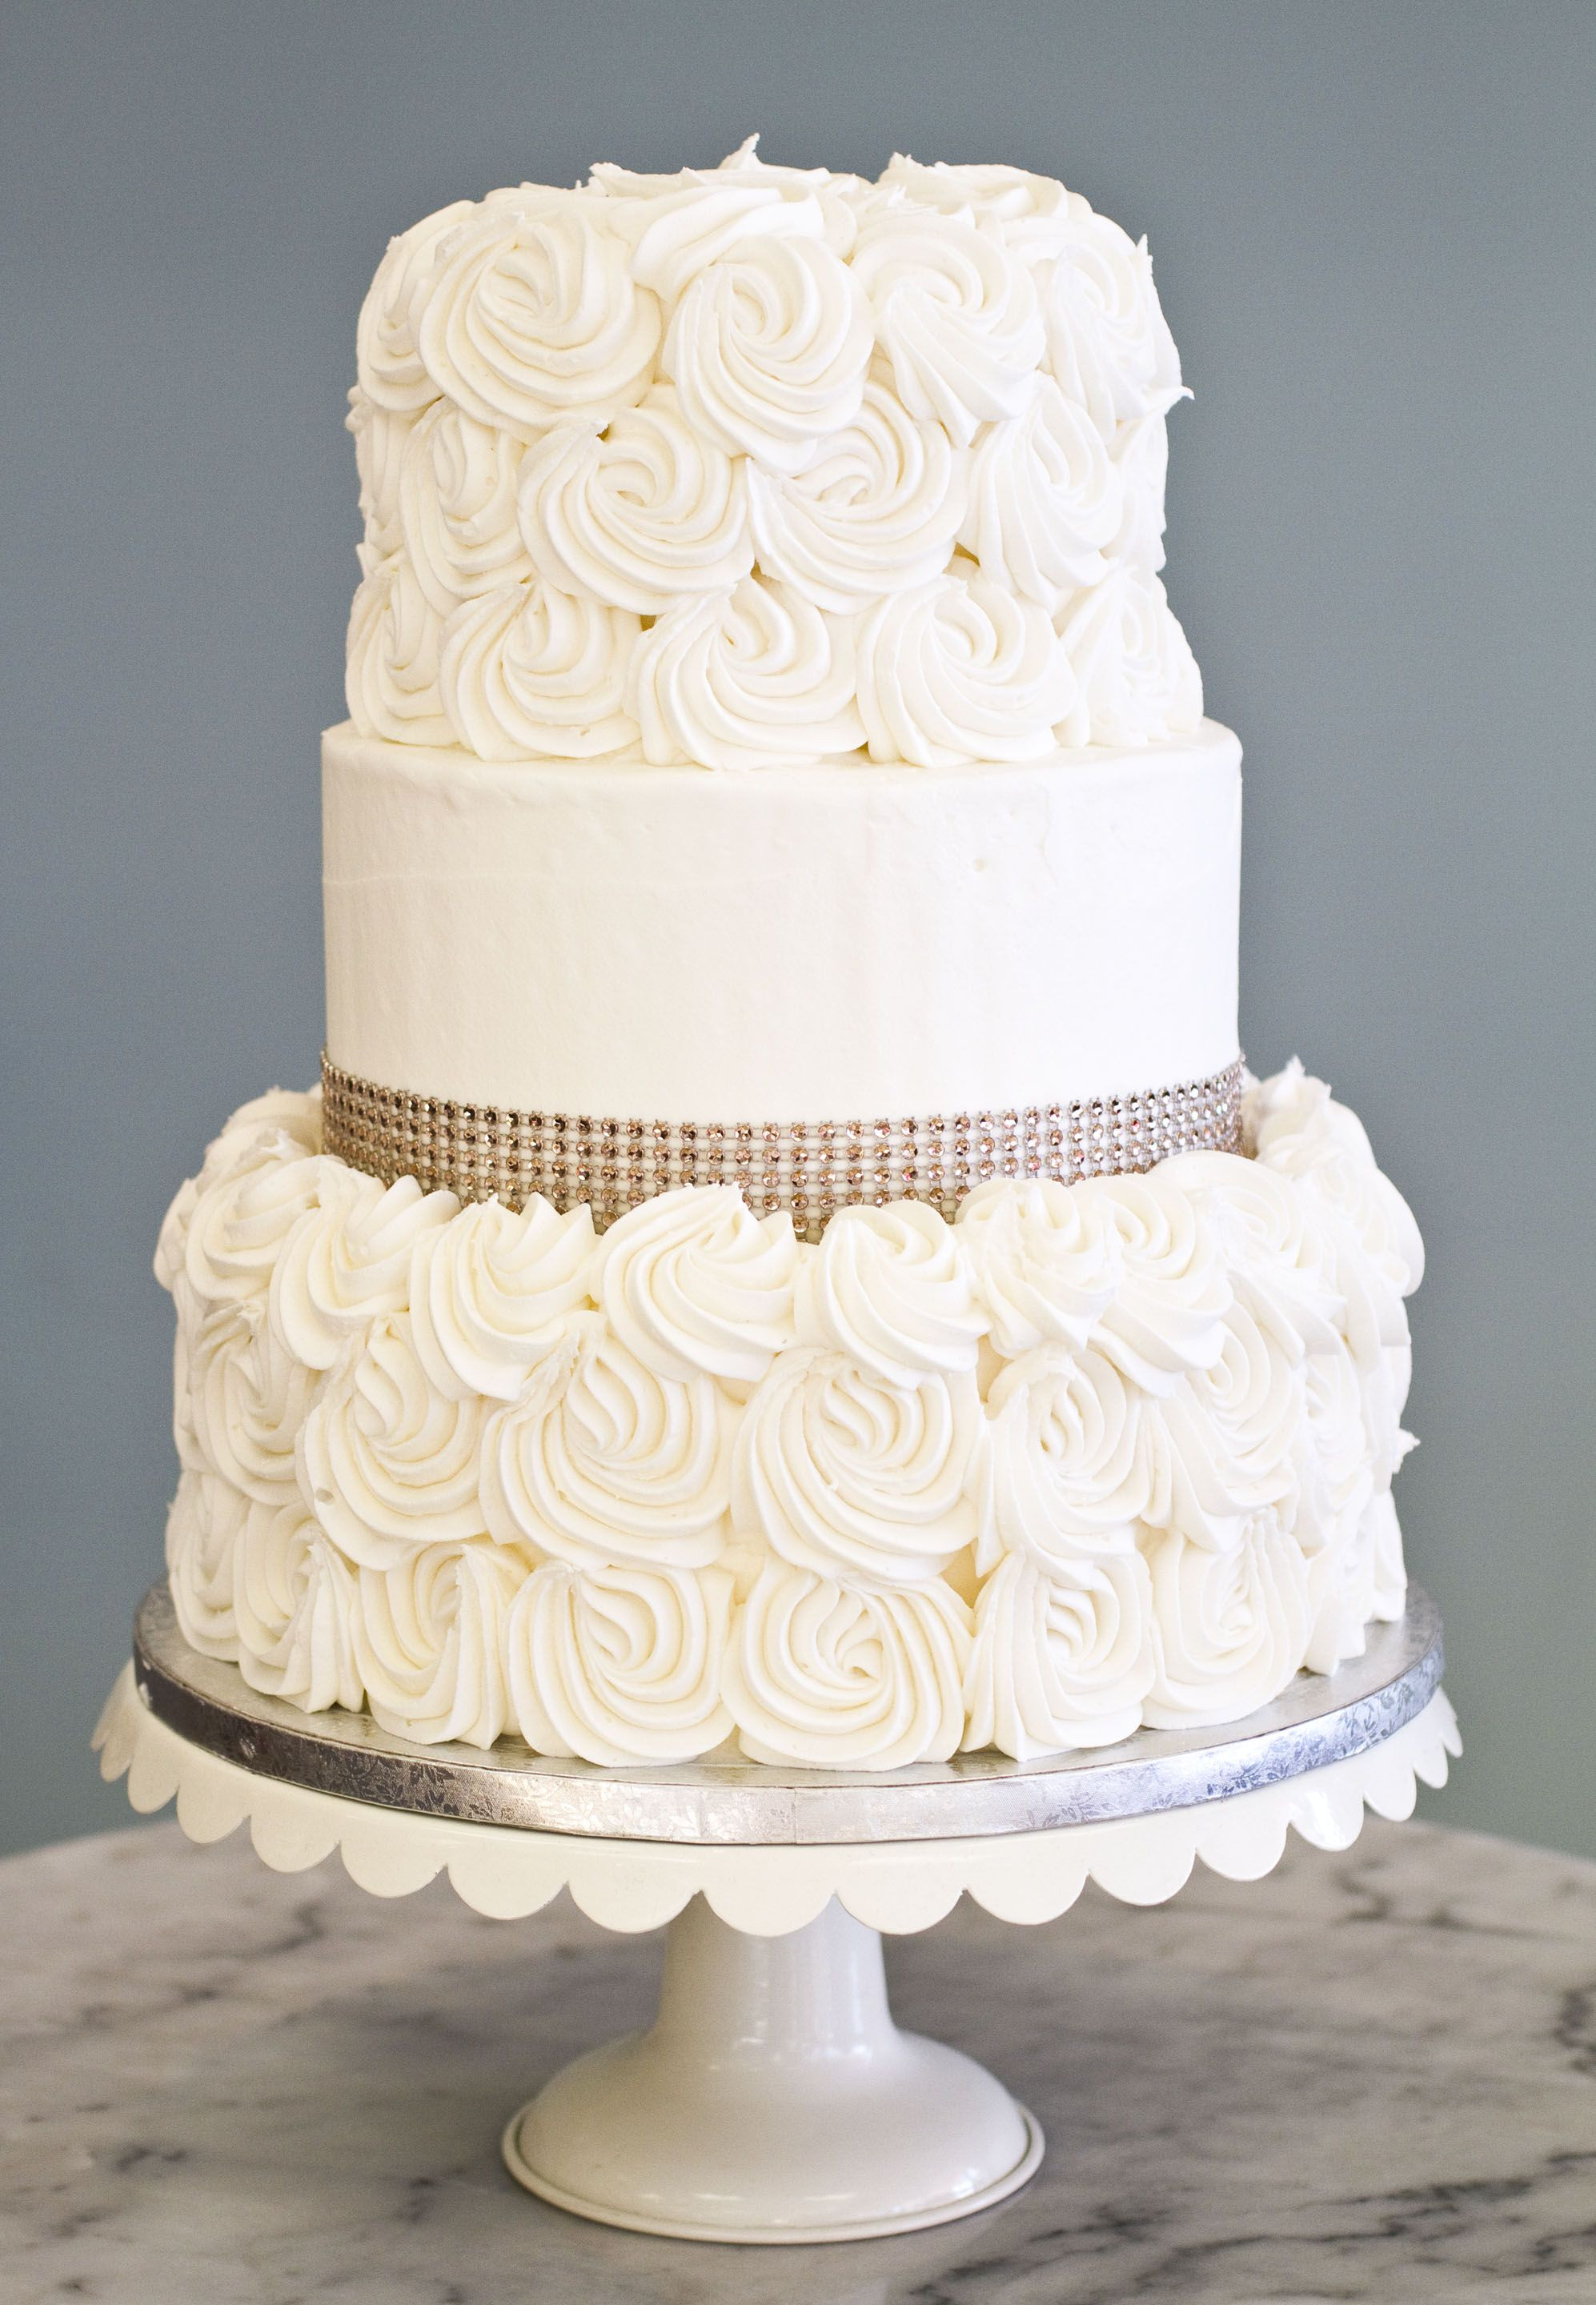 Simple Elegance Wedding Cakes  A simple elegant wedding cake with rosettes and